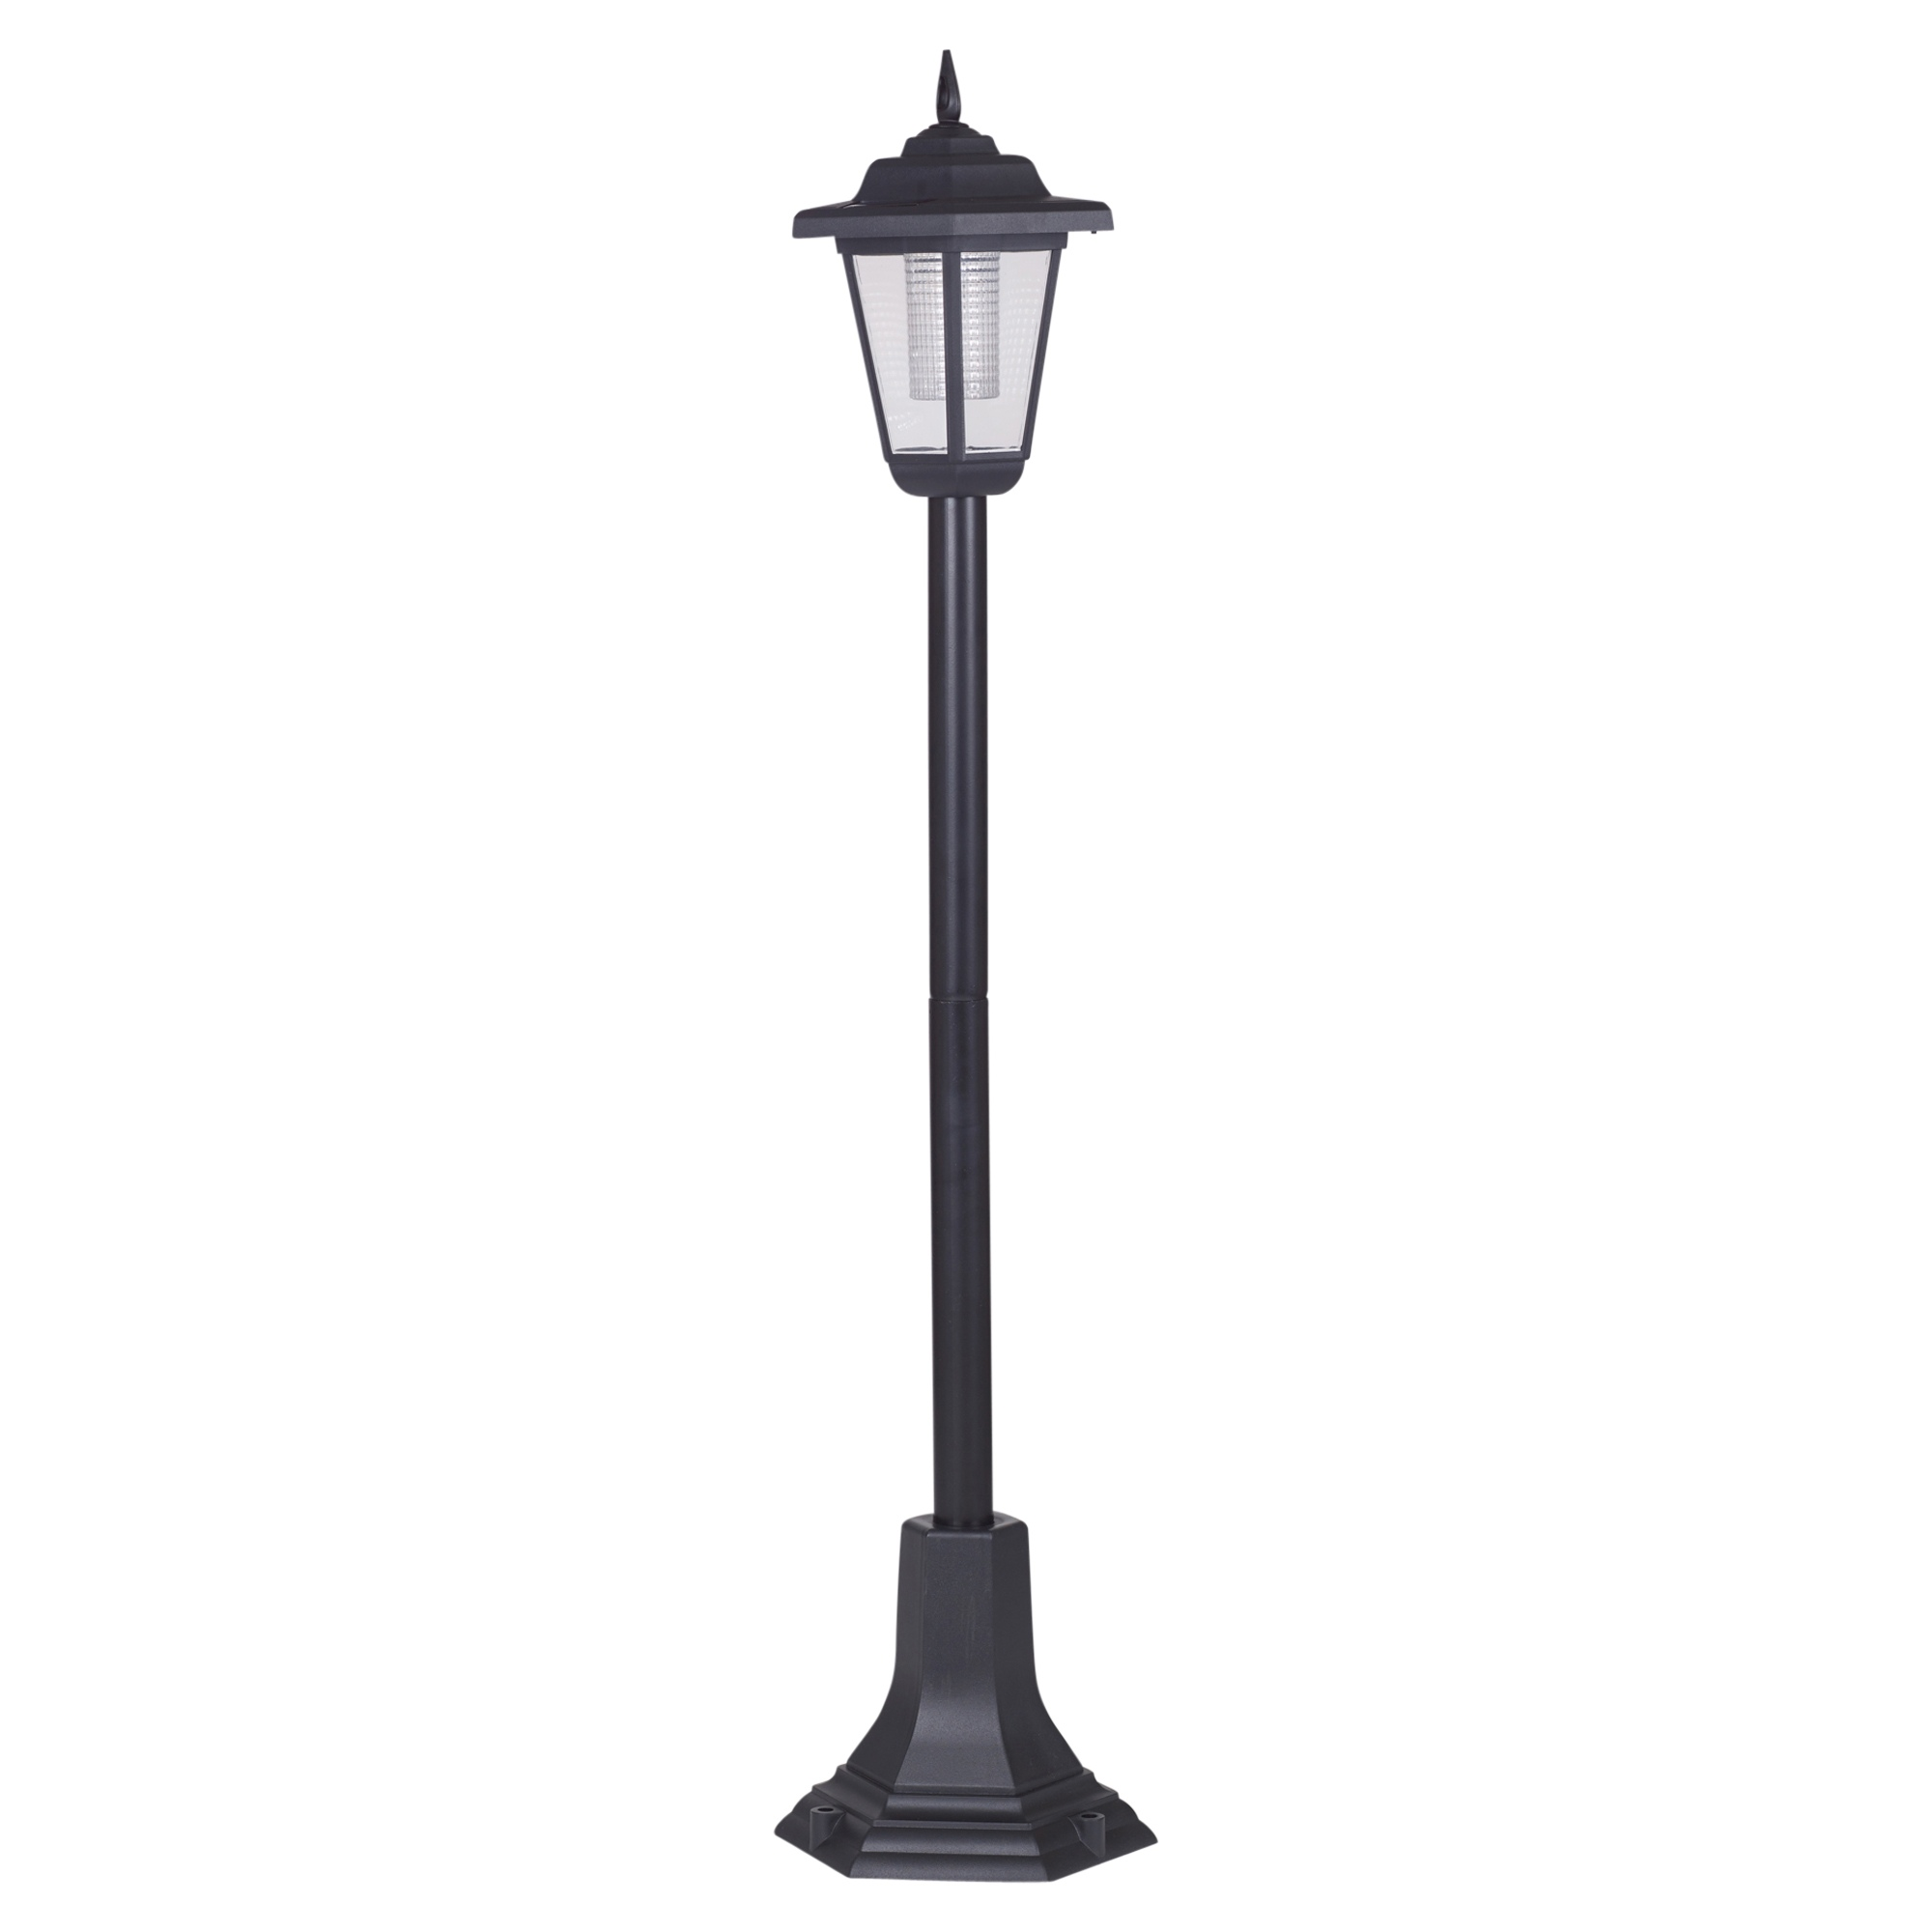 4 Foot Outdoor Solar Powered Lamp Post With: Solar Powered Garden Lights Lantern Lamp Black LED Pathway